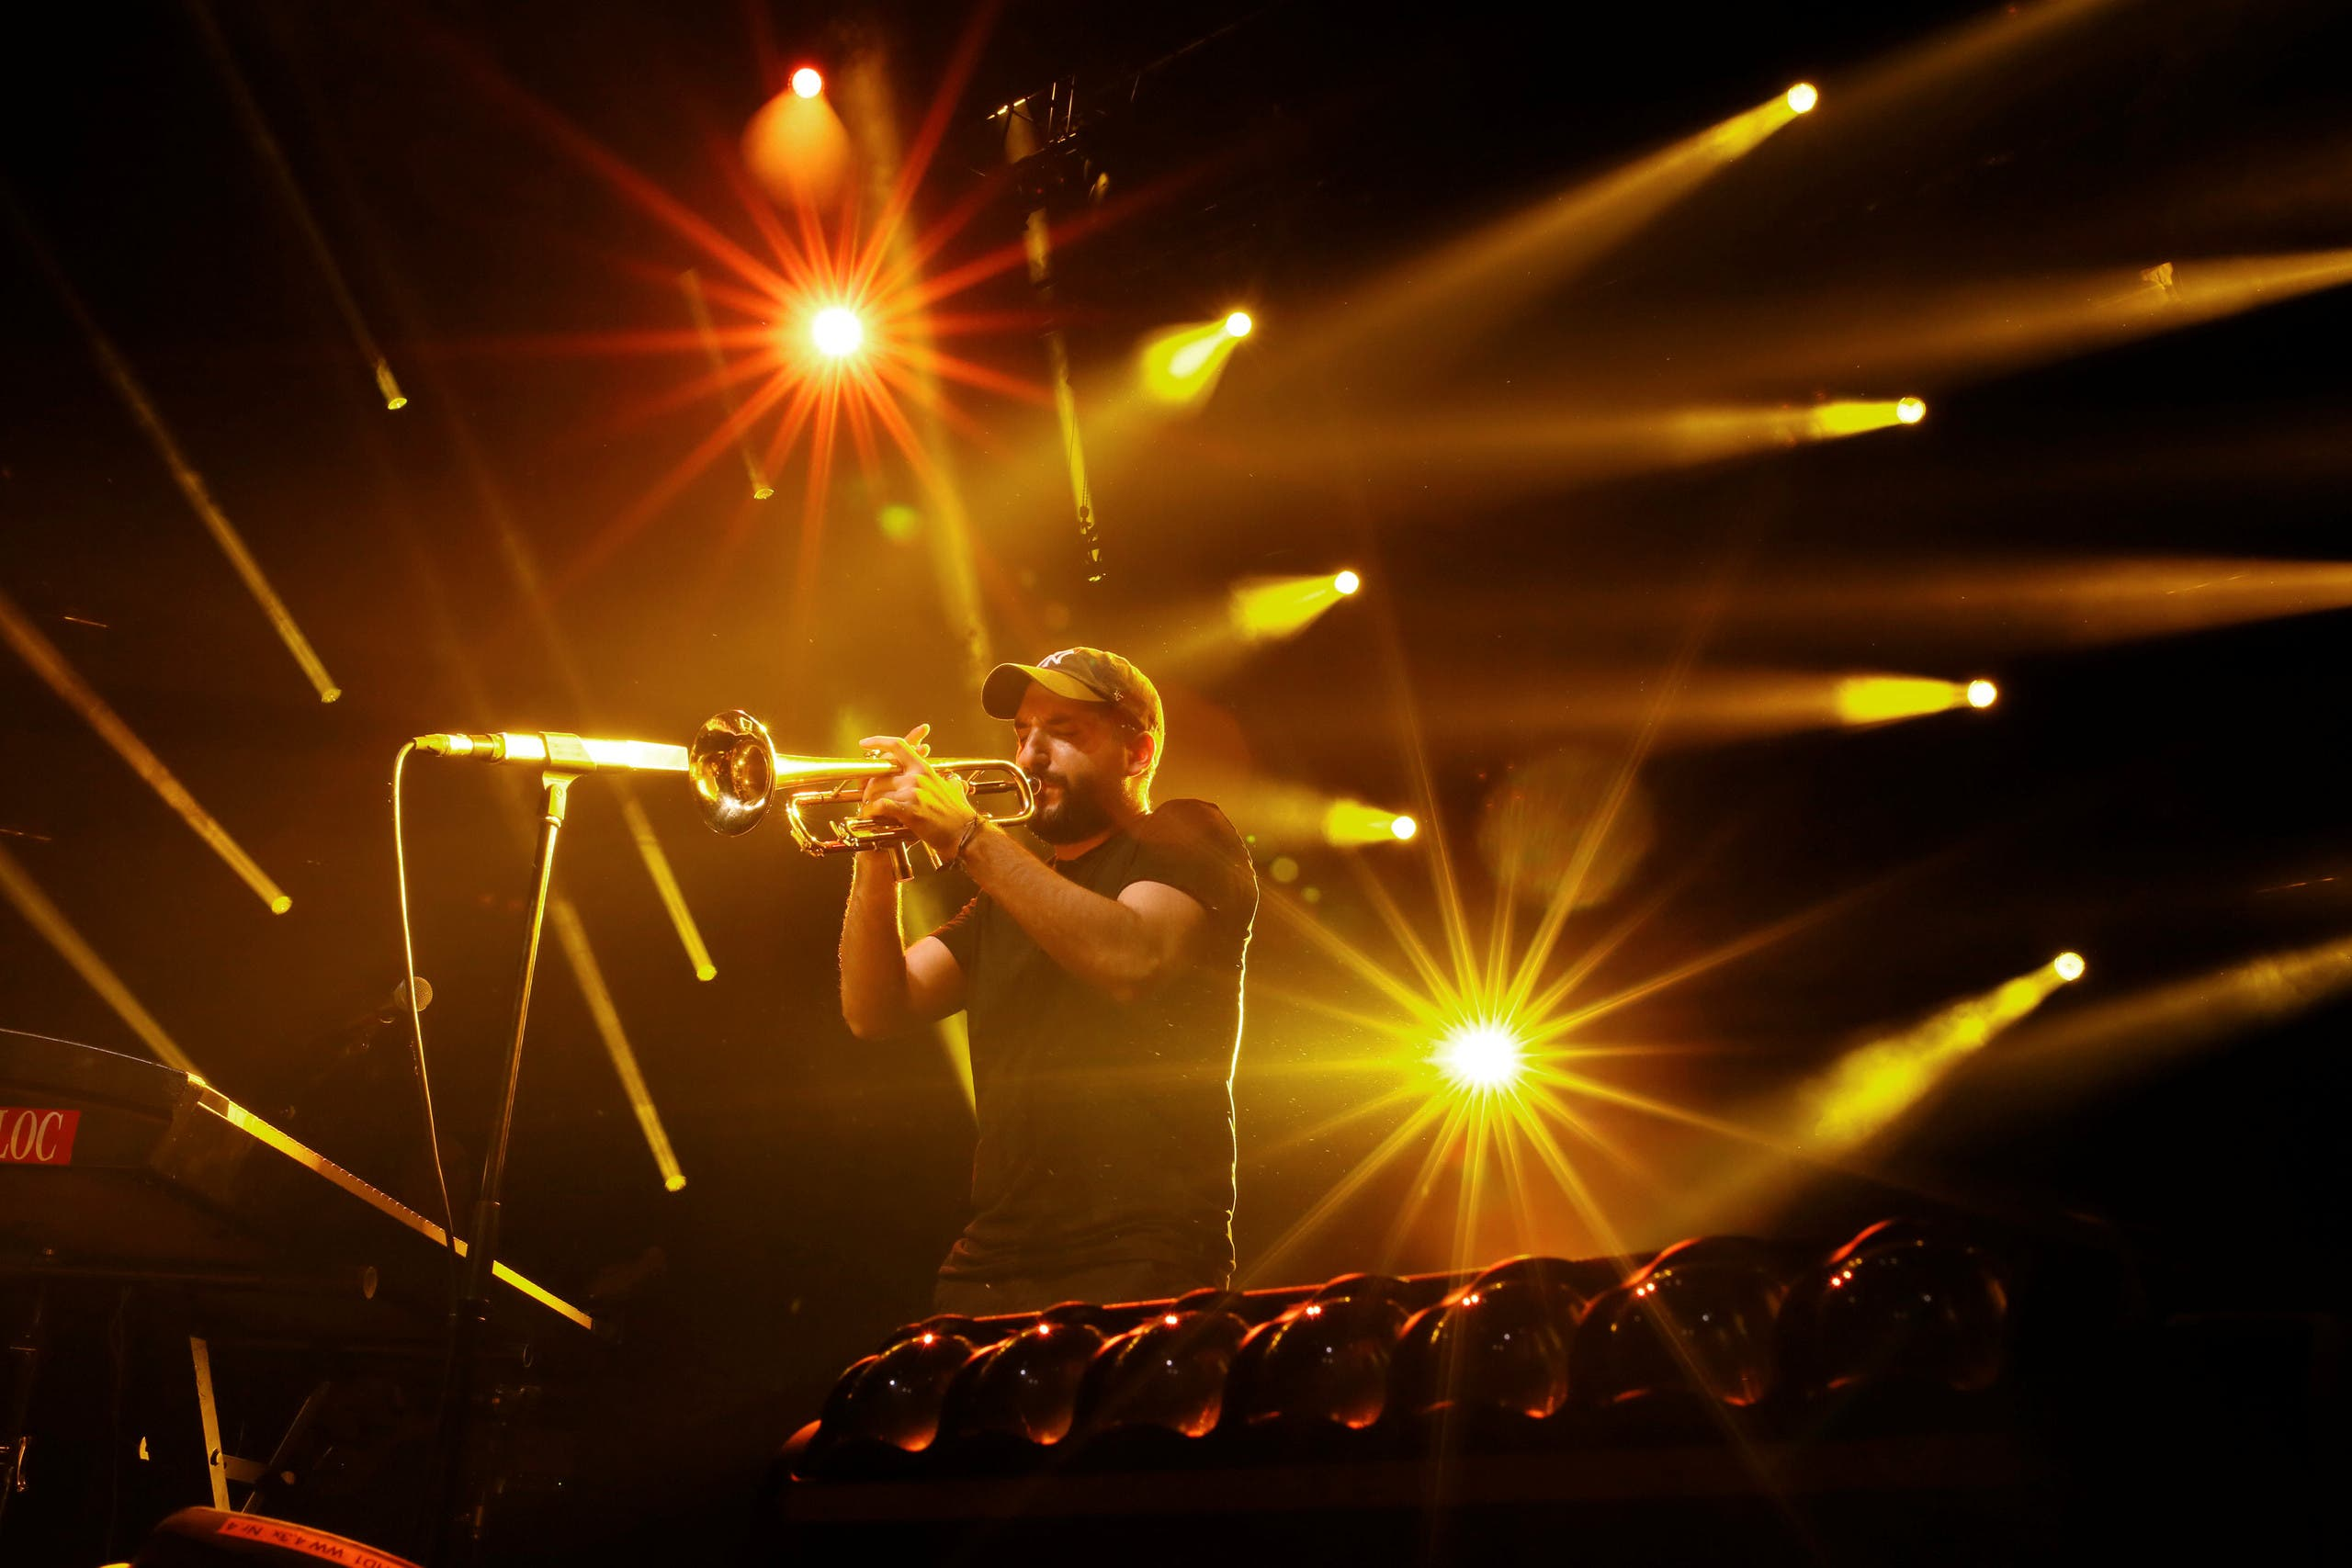 French-Lebanese trumpet player Ibrahim Maalouf performs during his first appearance at the 51st Montreux Jazz Festival in Montreux, Switzerland, July 13, 2017. reuters